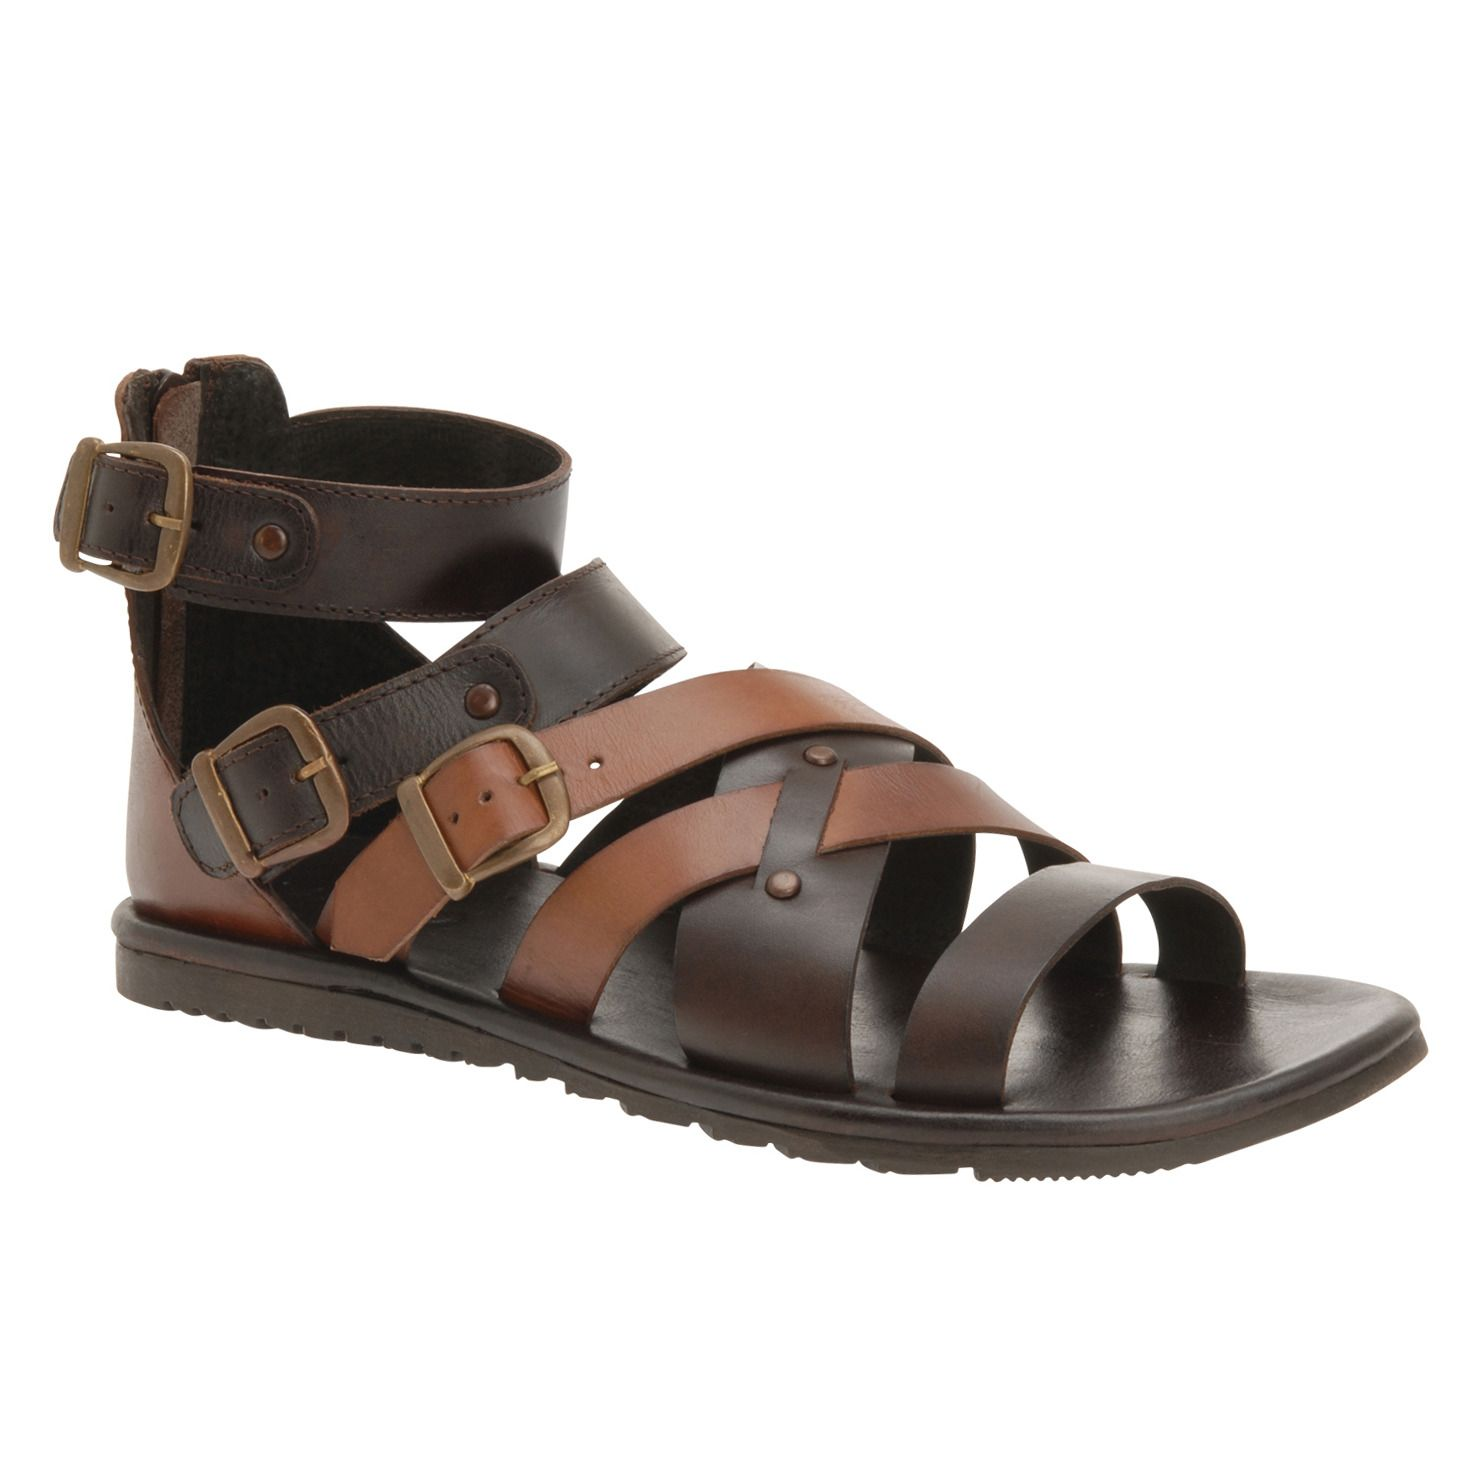 d69df4a34551 ALDO Cumpton Mens gladiator sandal. Just bought these and really hoping  they re worth it.